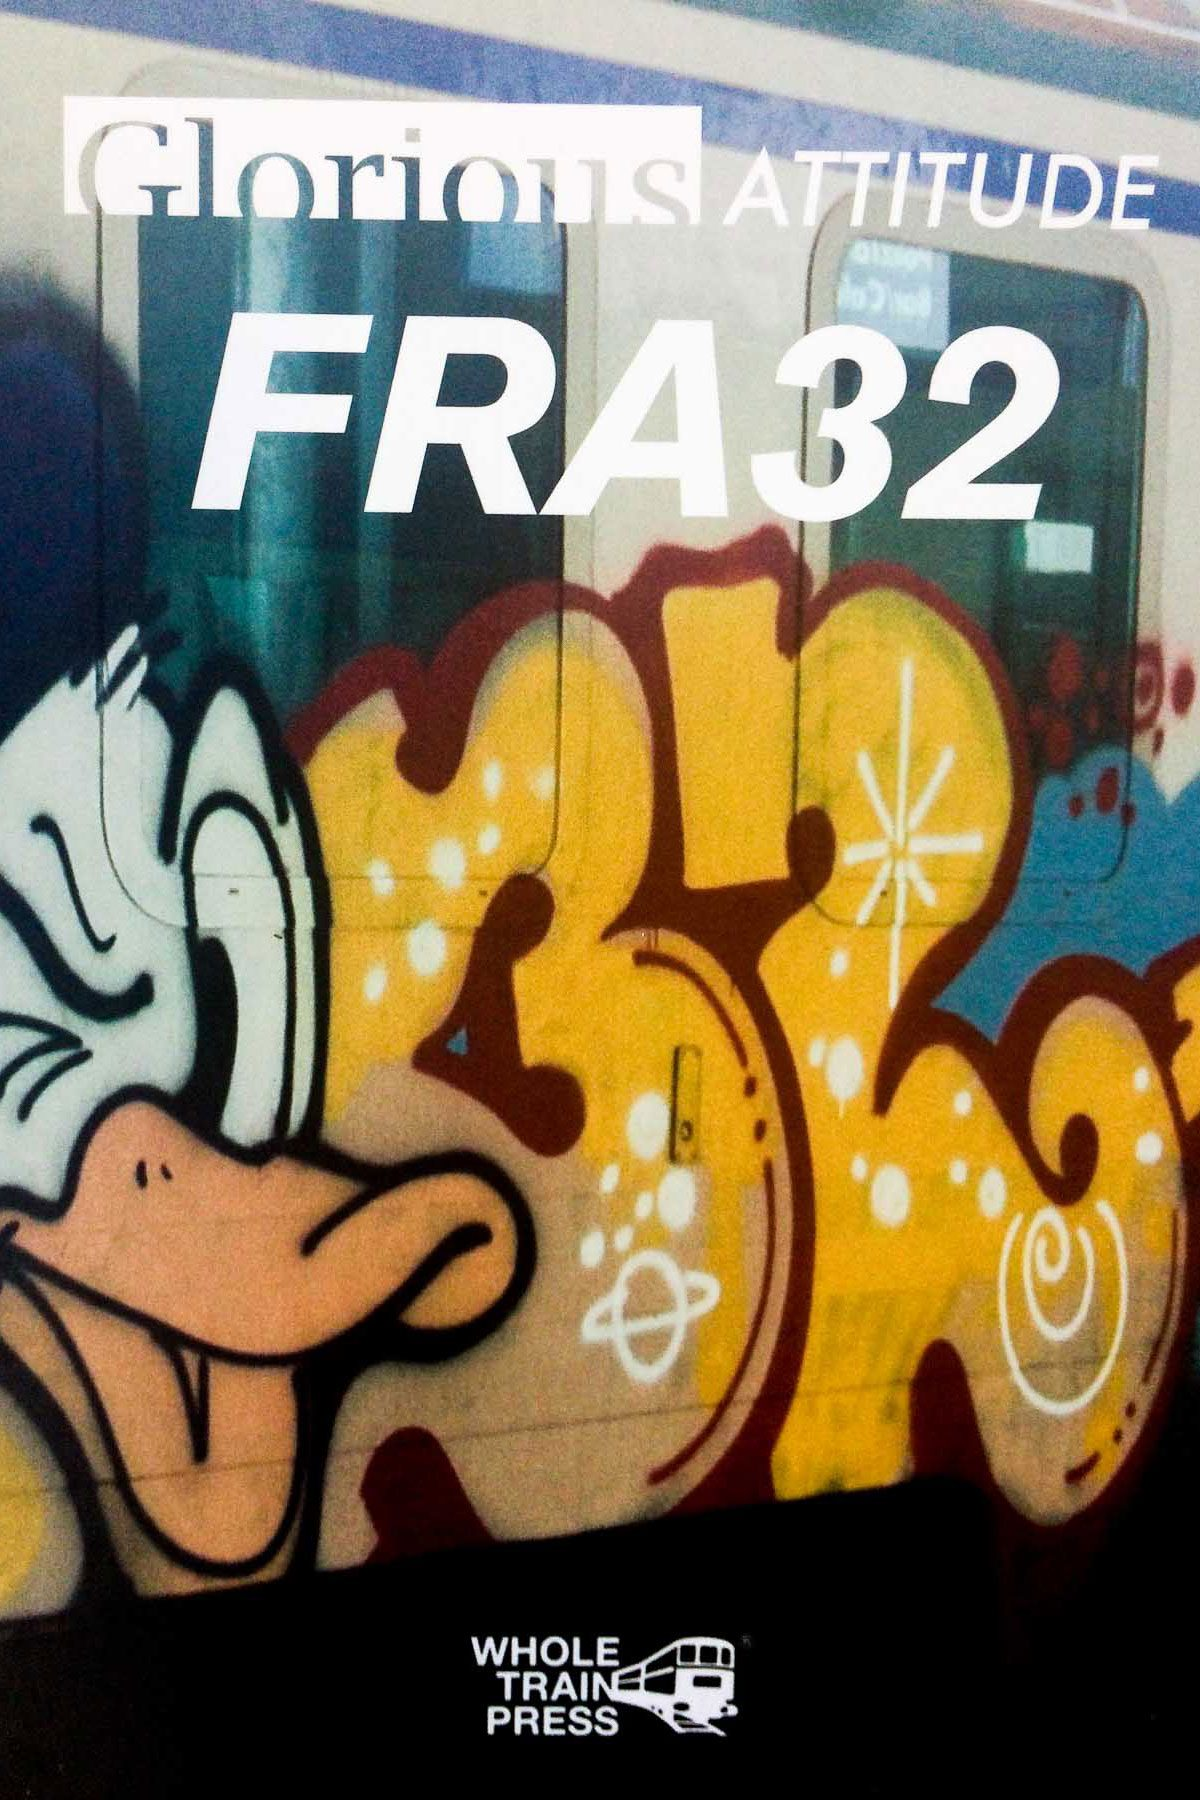 FRA32 - Glorious Attitude + Train Stories di Wholetrain Press